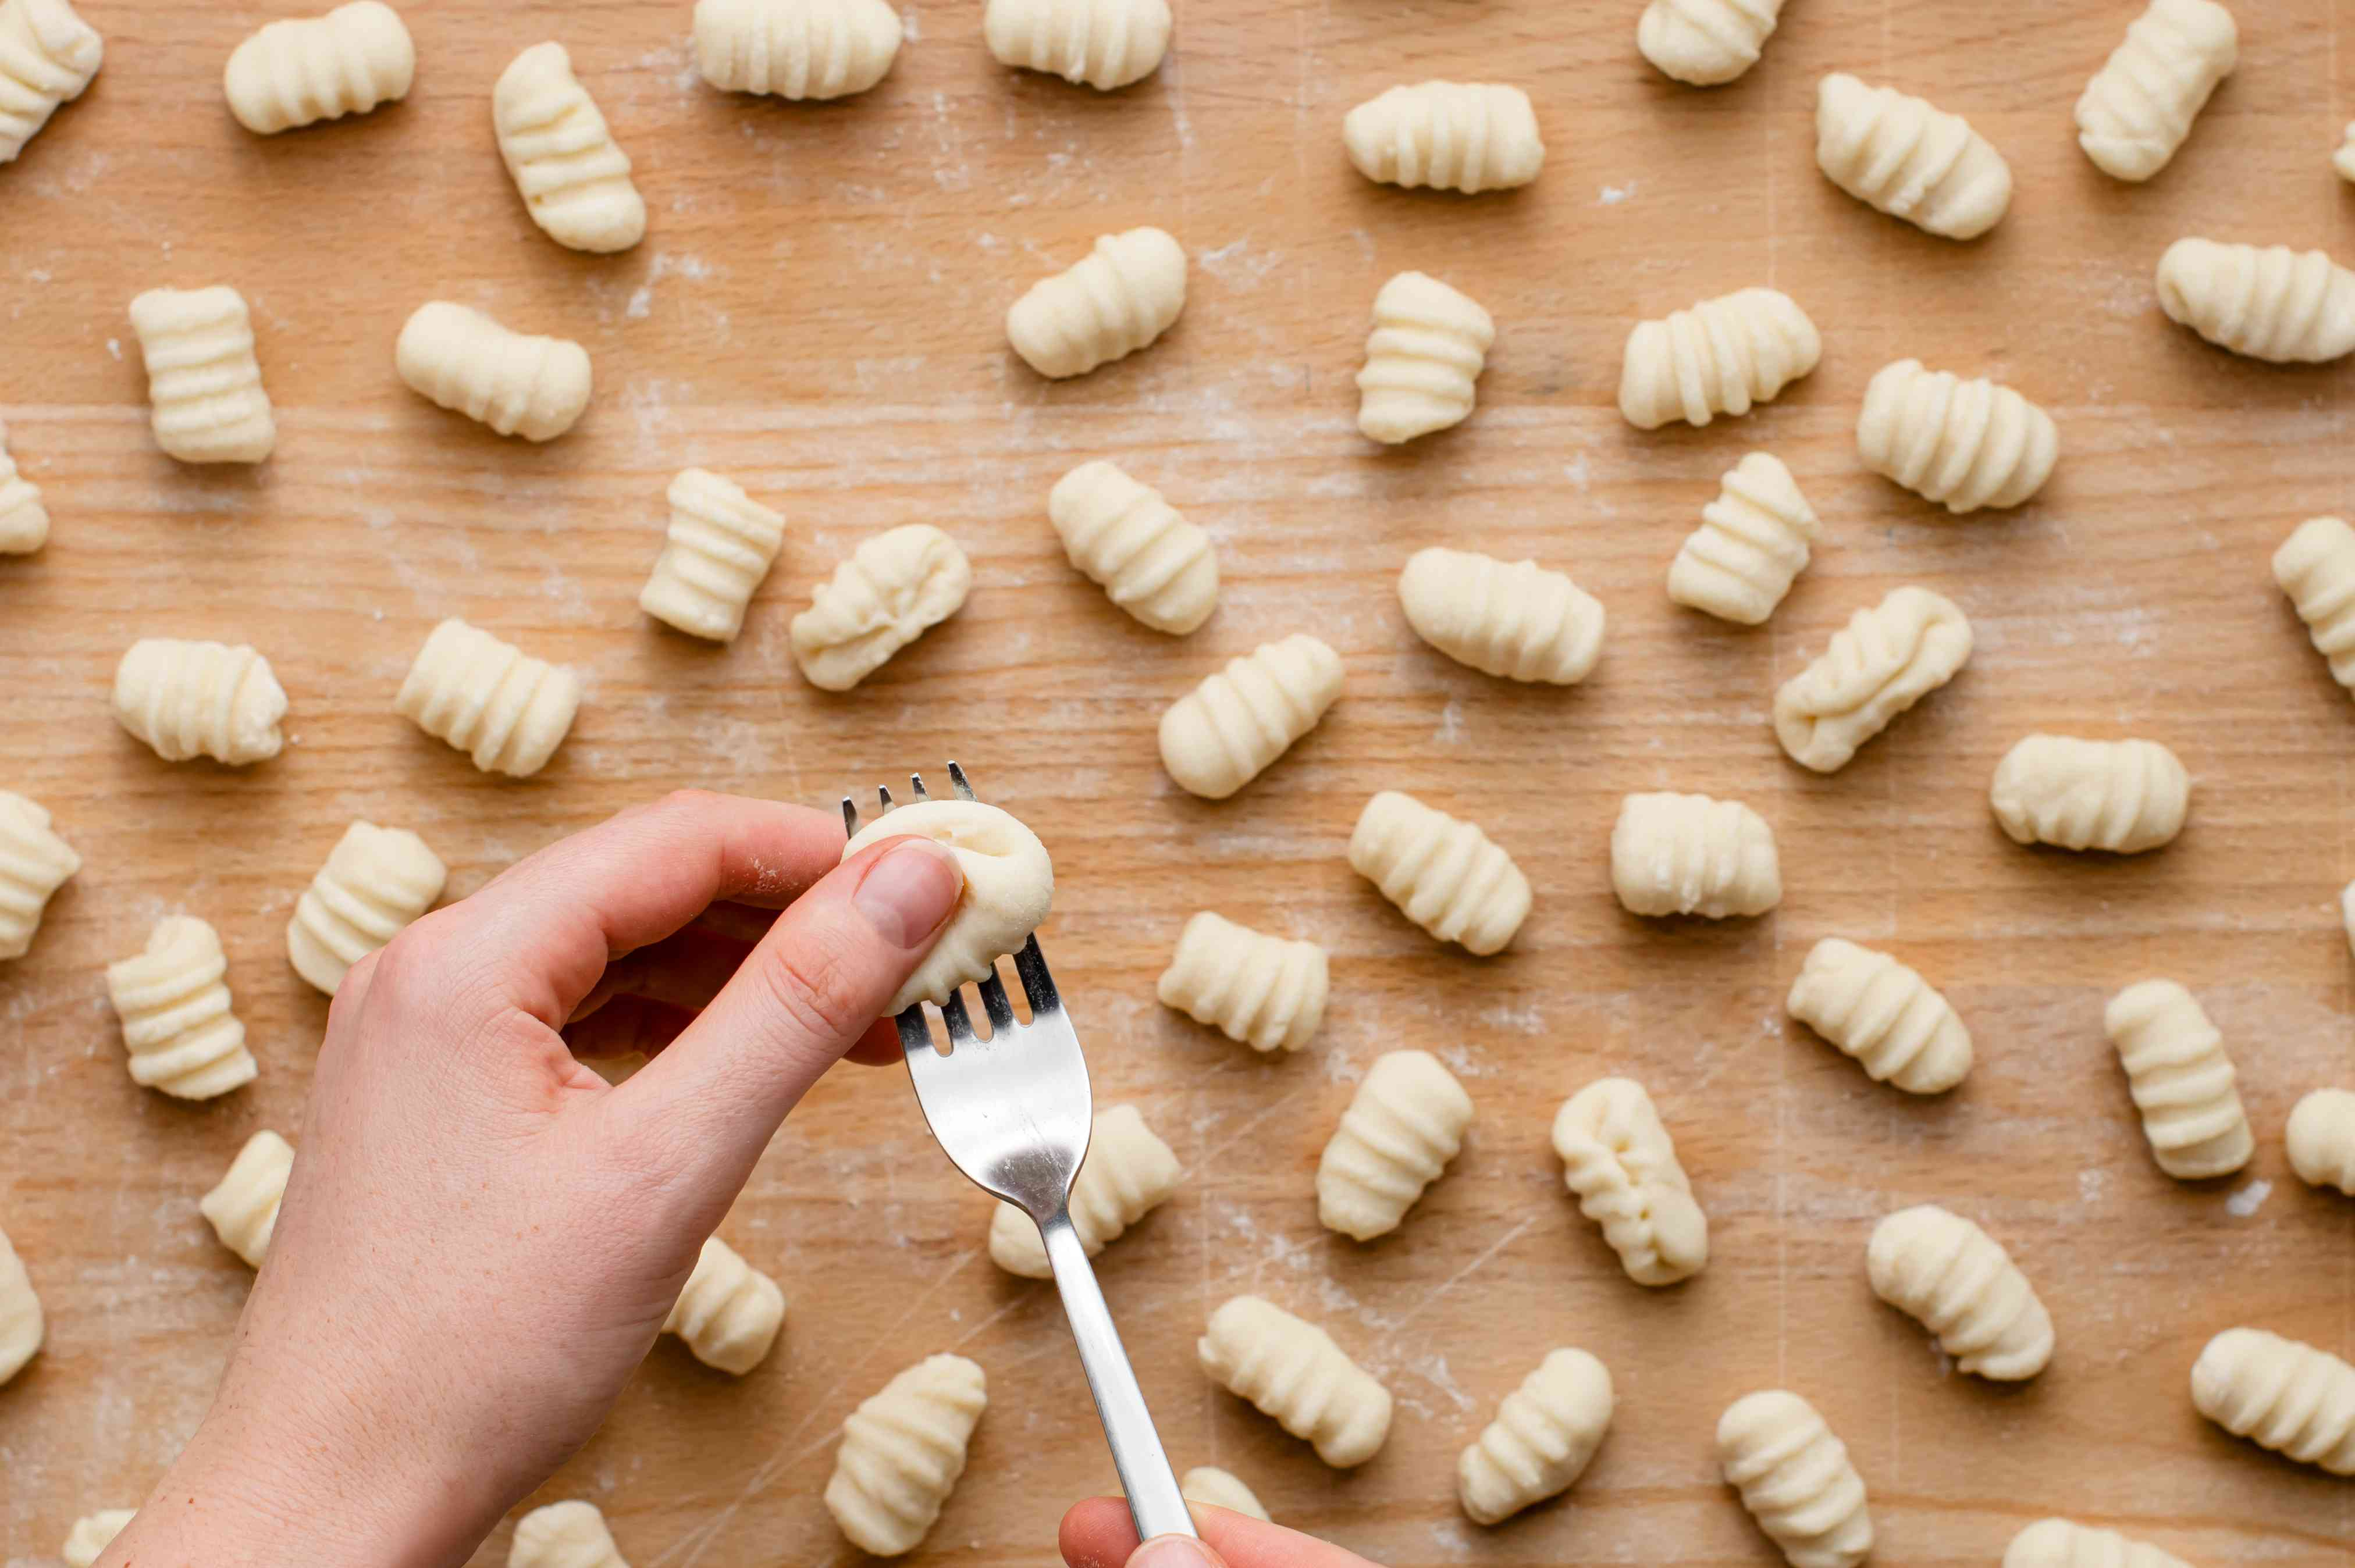 Shaping potato gnocchi with a fork